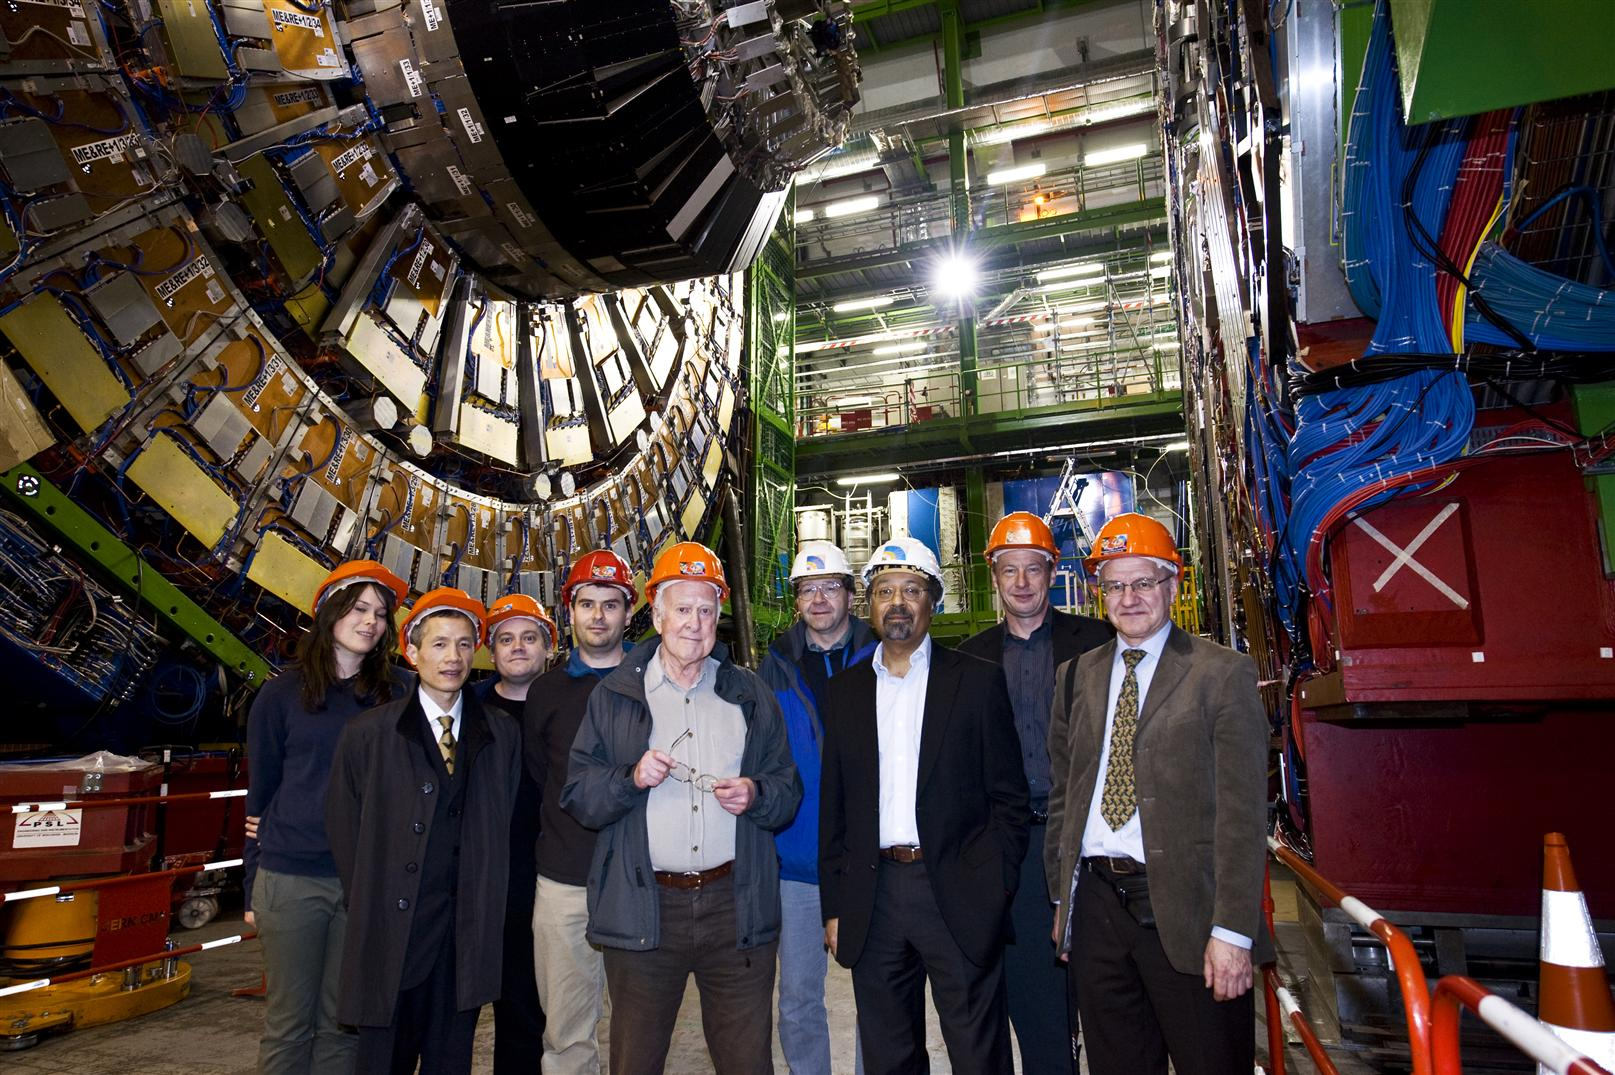 Portrait of Peter Higgs.  Prof. Peter Higgs visits the CMS experiment, which may find the elusive Higgs boson